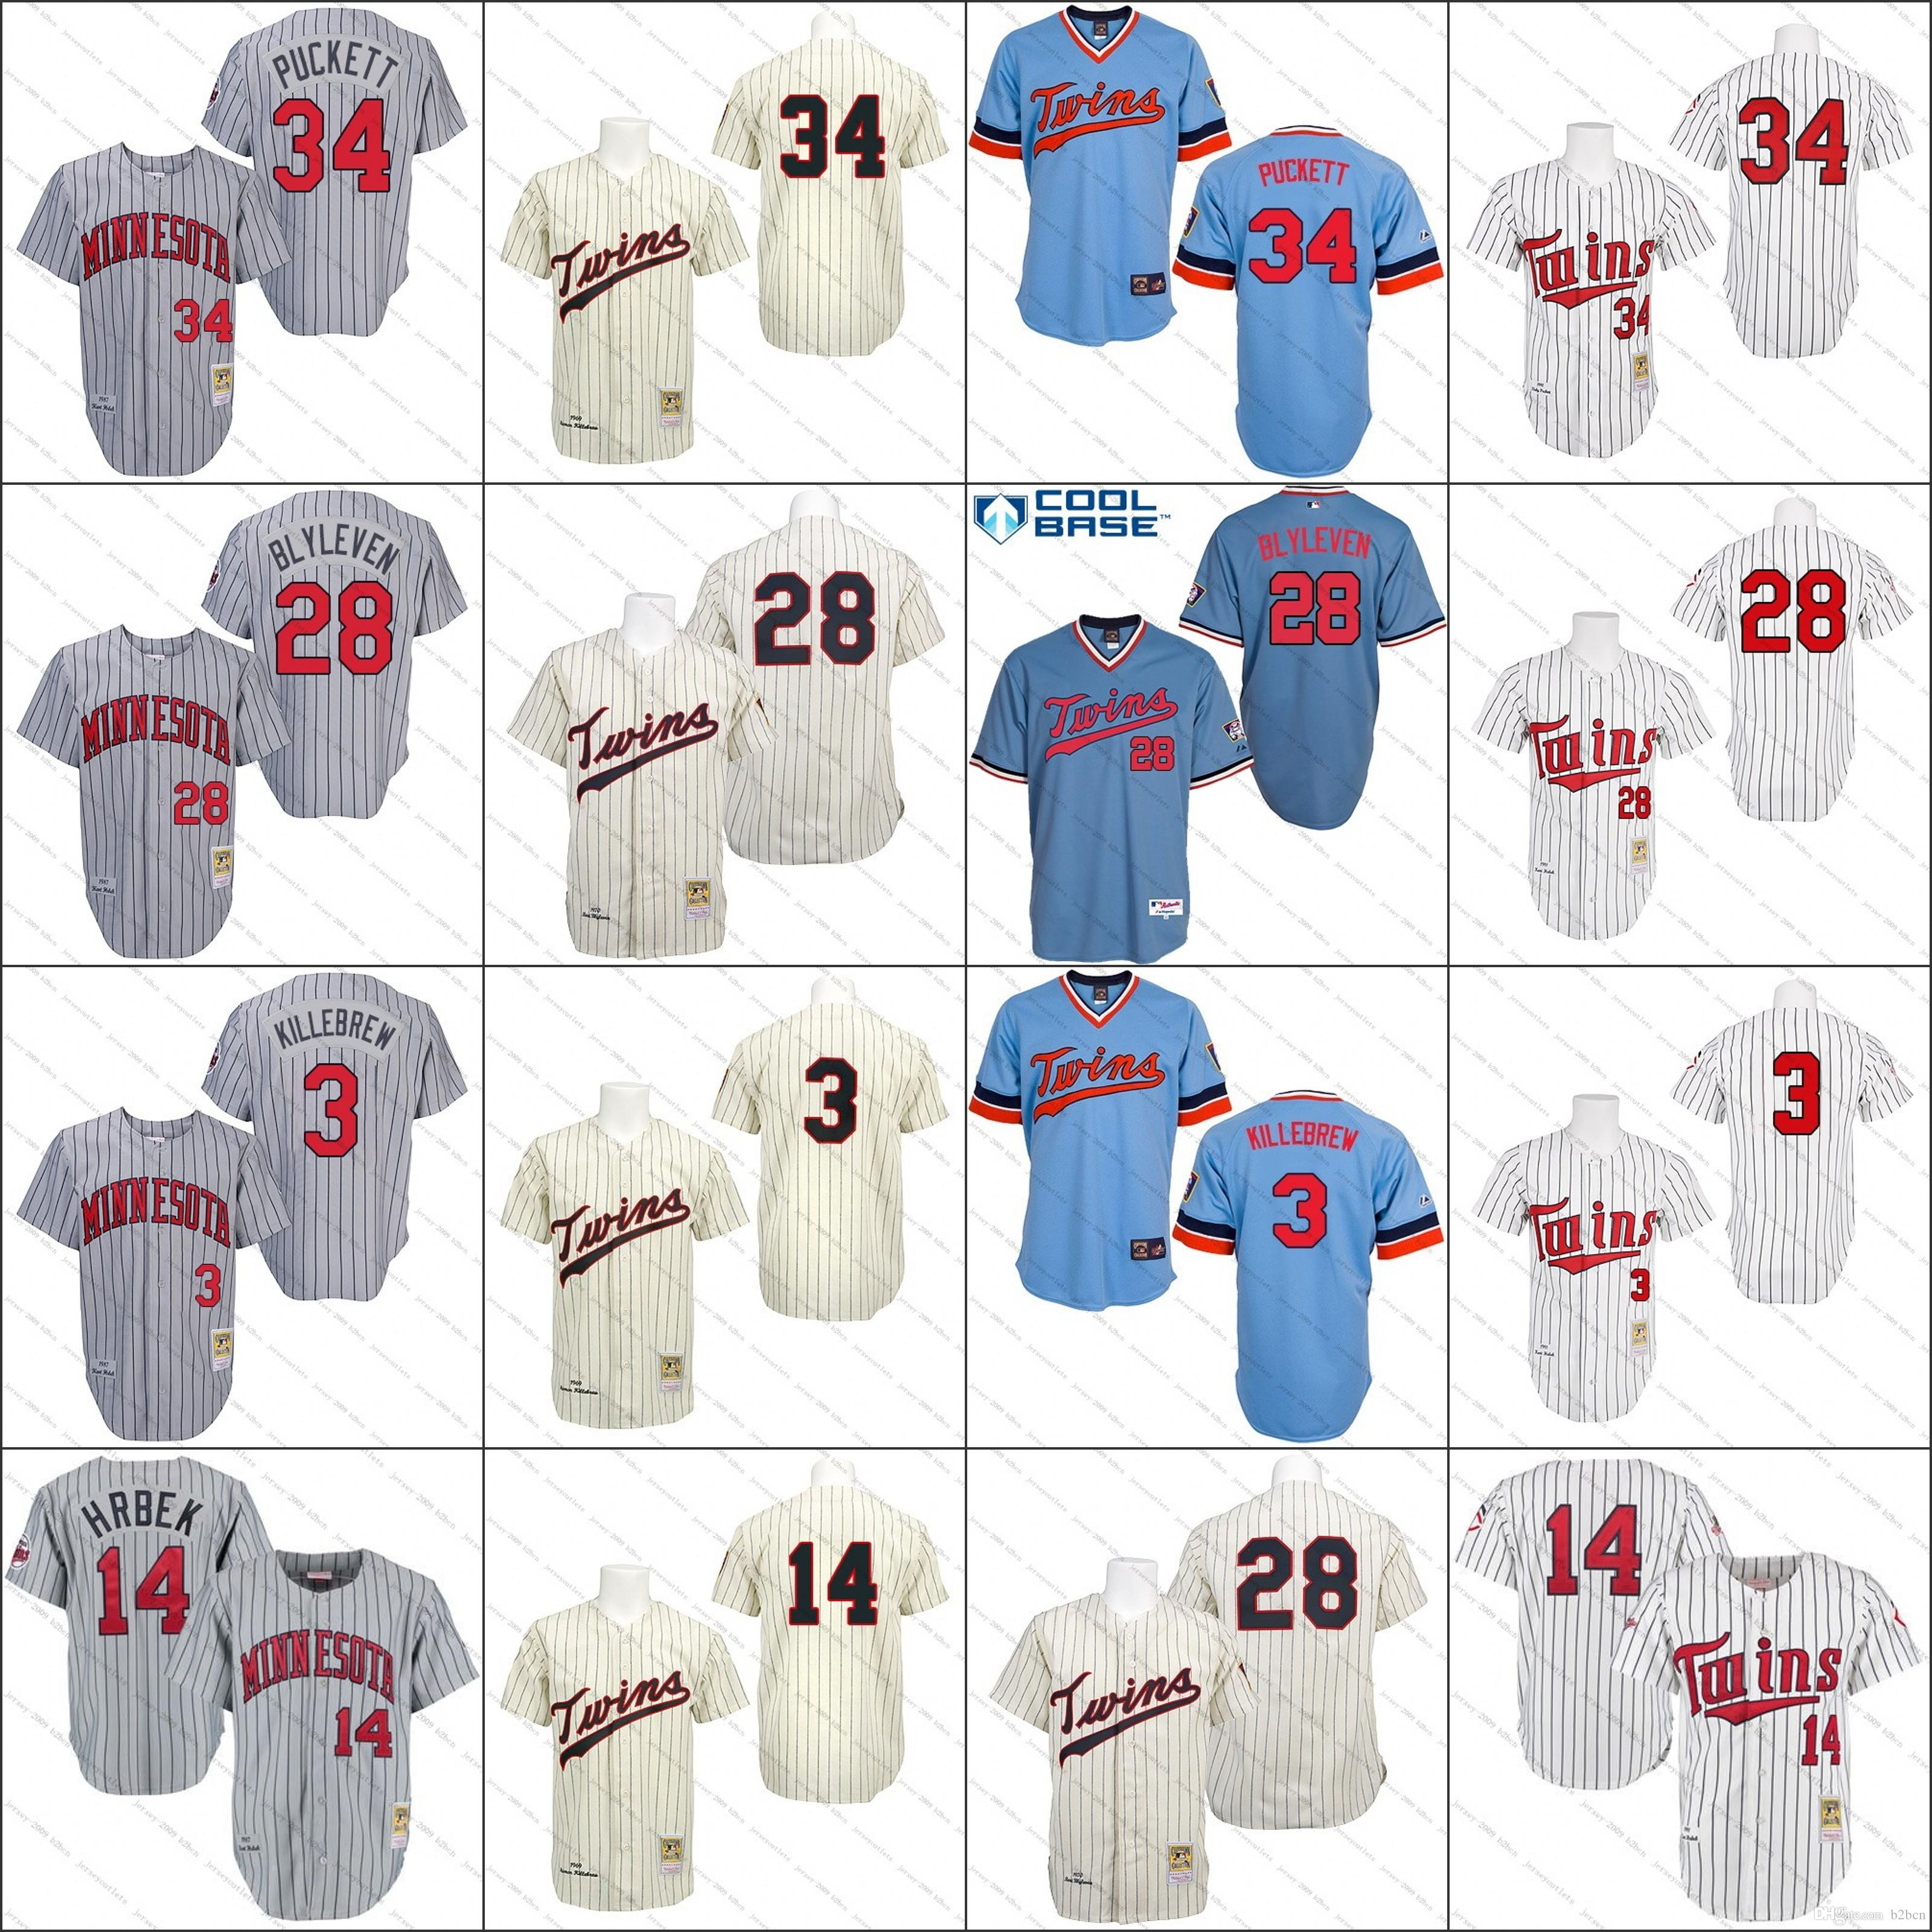 3ff8da4e508 ... MLB Jersey White 1991 Cream 1969 Grey 1987 Light Blue Throwback Kirby  Puckett Harmon Kille Bert Blyleven Kent Authentic Minnesota Twins No.34 ...